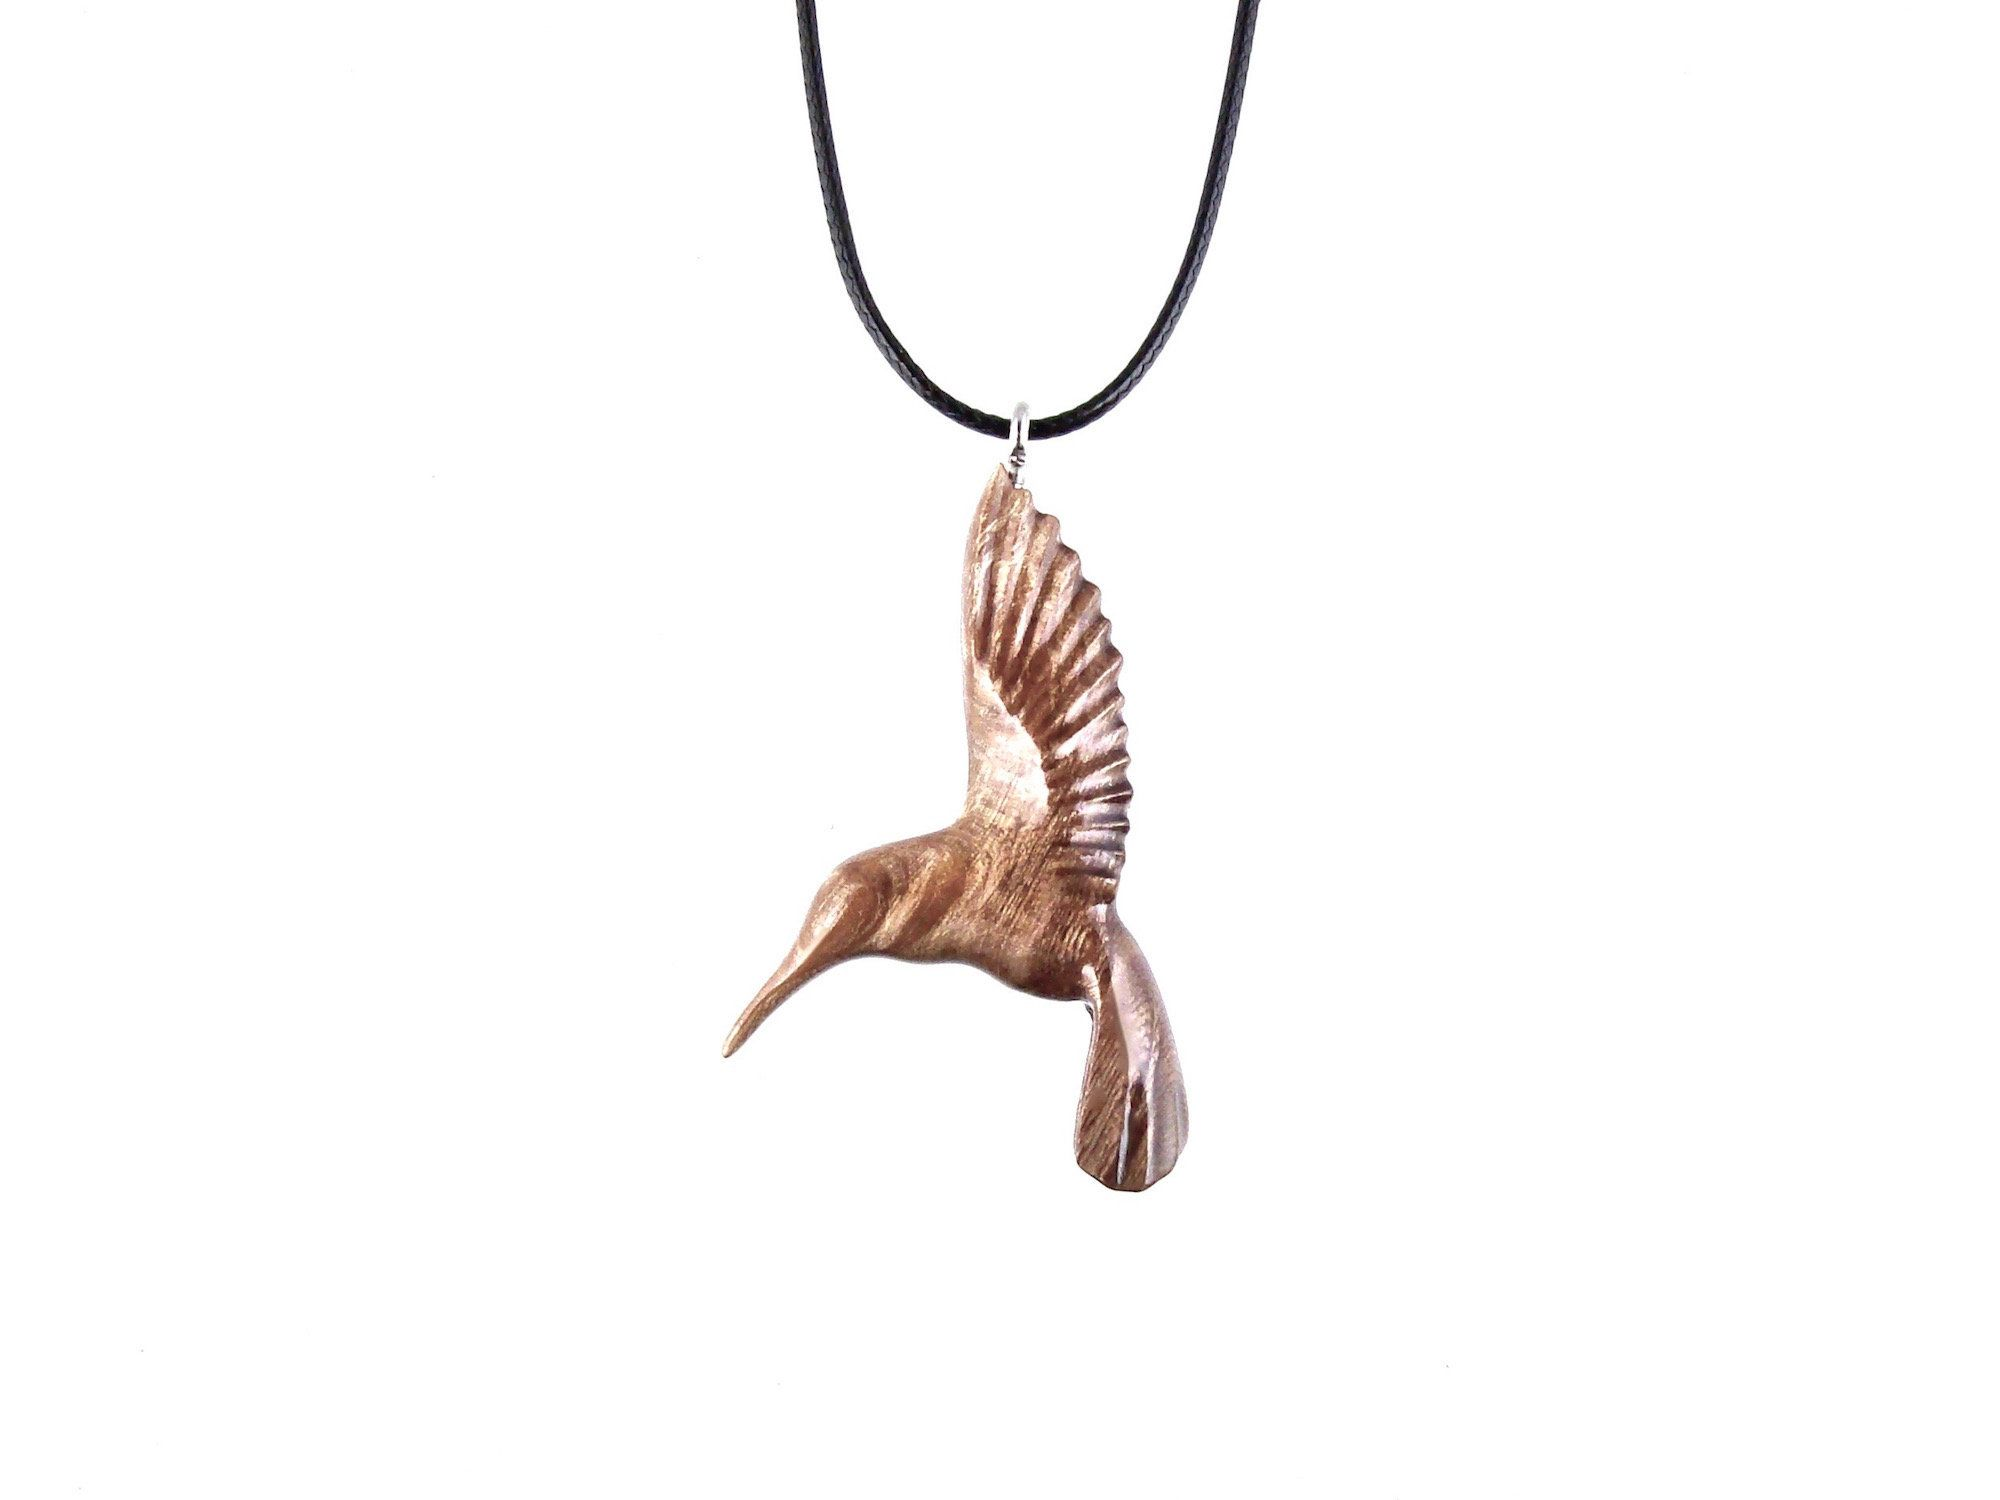 Hummingbird necklace bird jewelry nature art pendant bird necklace hummingbird resin pendant copper or silver necklace gift idea for her